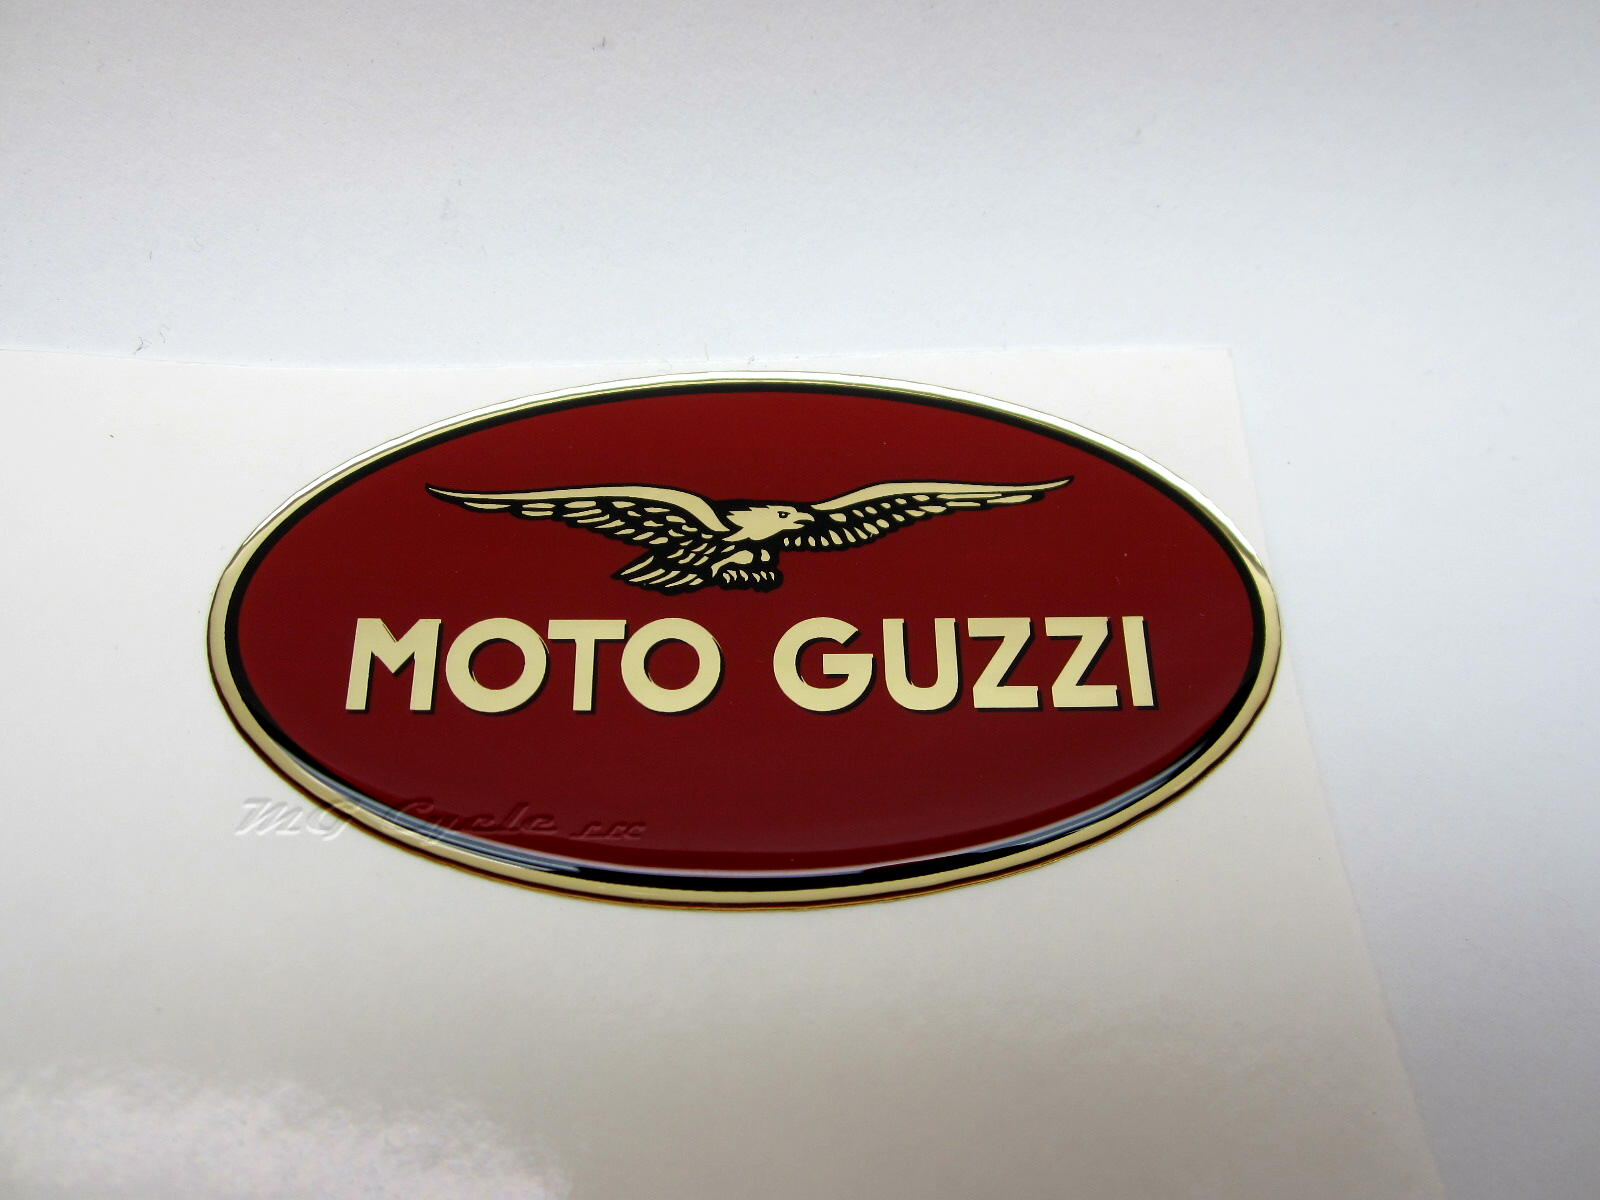 03482070 right side hepco becker moto guzzi emblem badge 83 x 45mm oval mg cycle. Black Bedroom Furniture Sets. Home Design Ideas